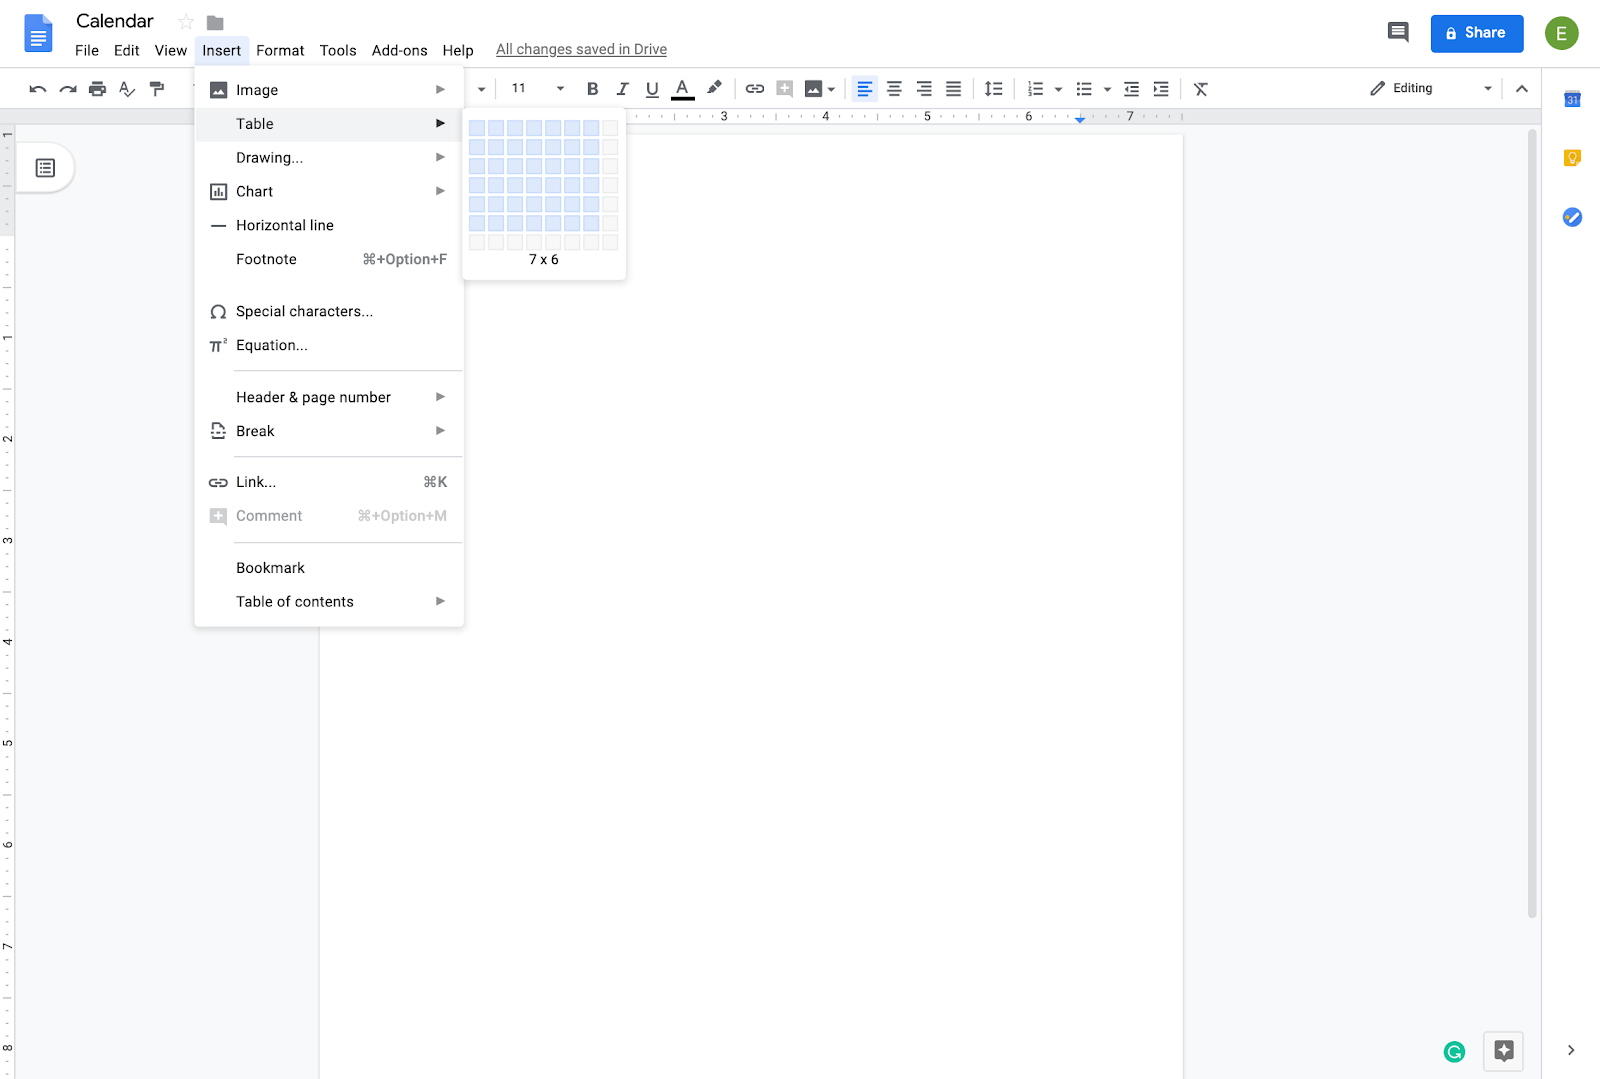 How To Create A Calendar In Google Docs | Copper intended for Calendar Maker Google Docs